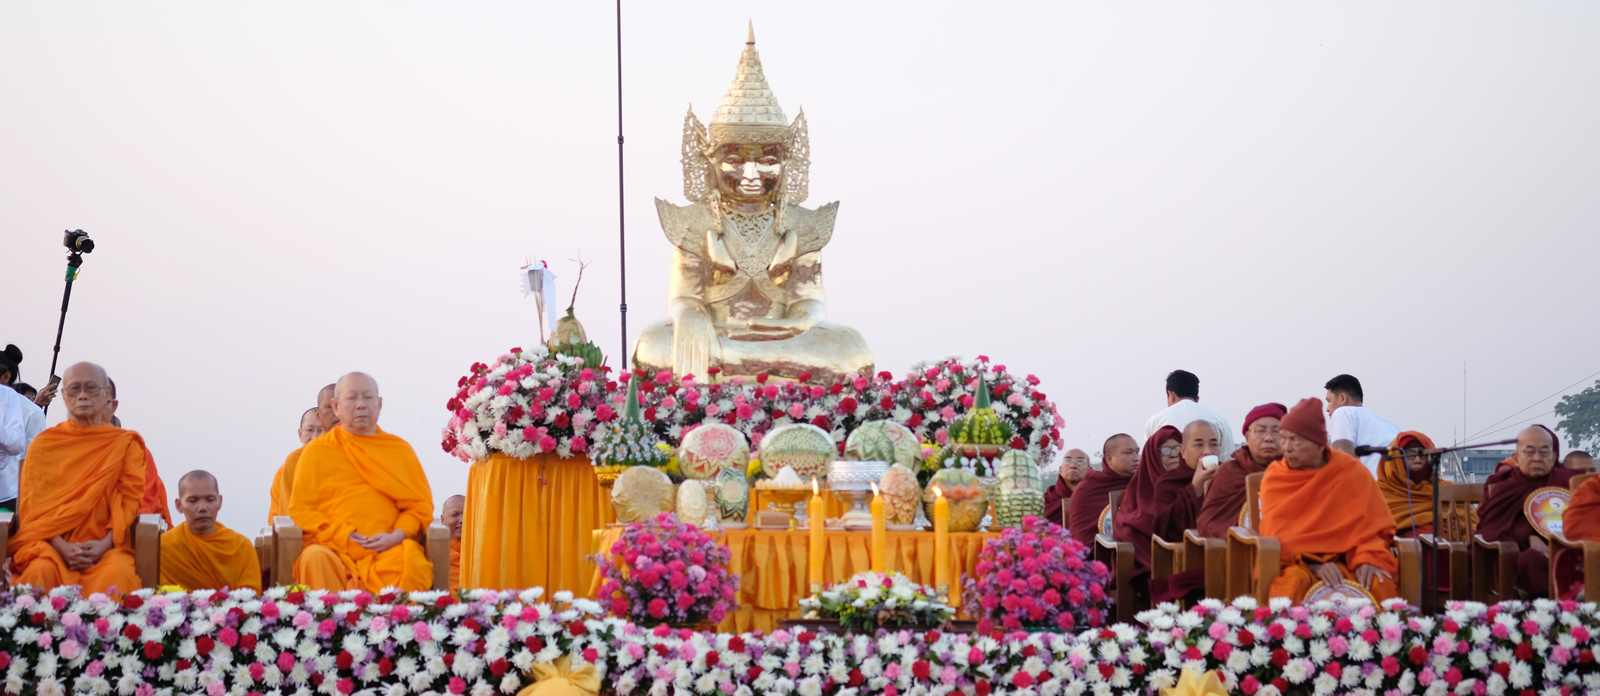 Alms Offering Ceremony to 20,000 Monks in Mandalay, Myanmar, January 2018